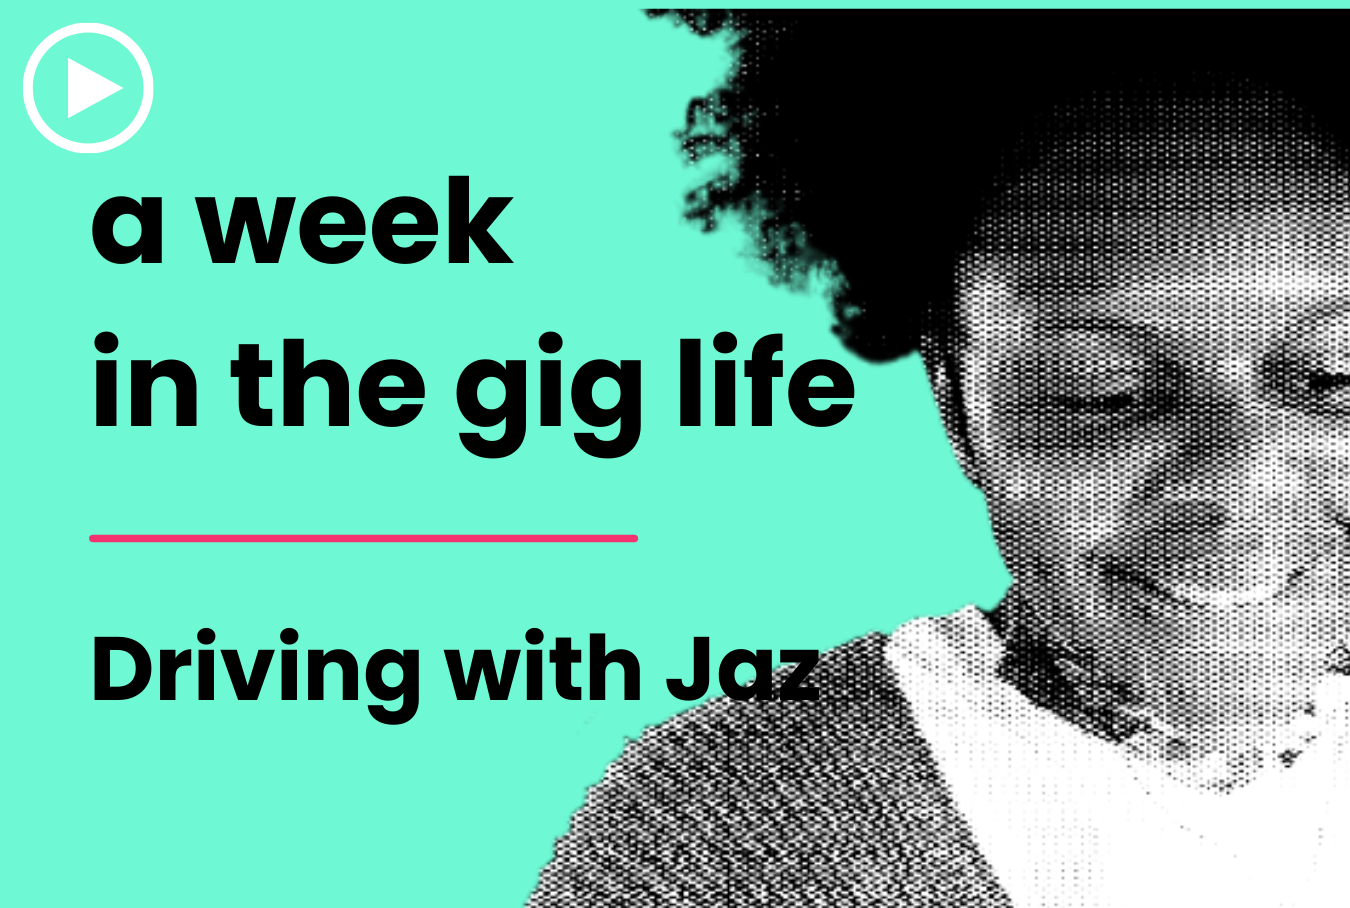 Week in the Gig Life: Driving with Jaz